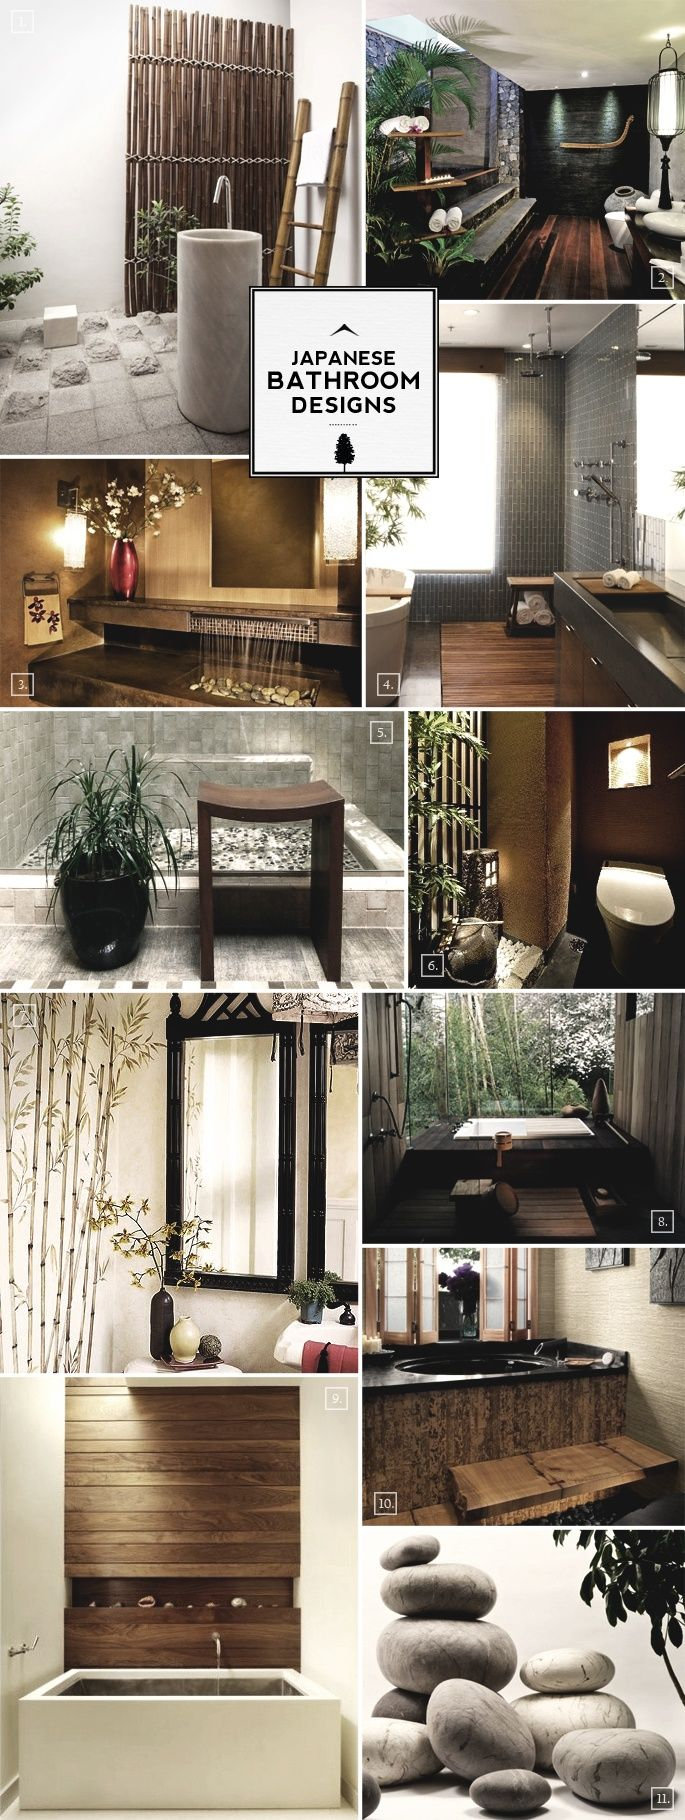 20 Best Images About Japanese Bathroom On Pinterest